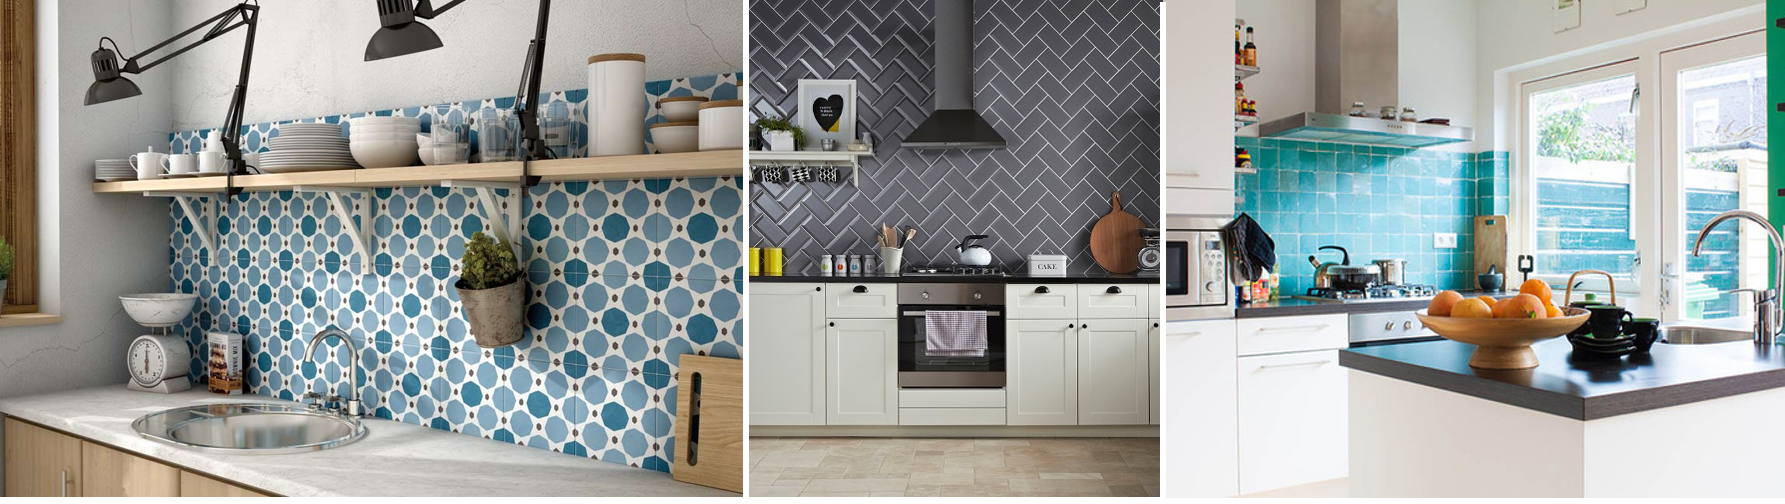 How to create a feature wall with photos - Kitchen_tiles